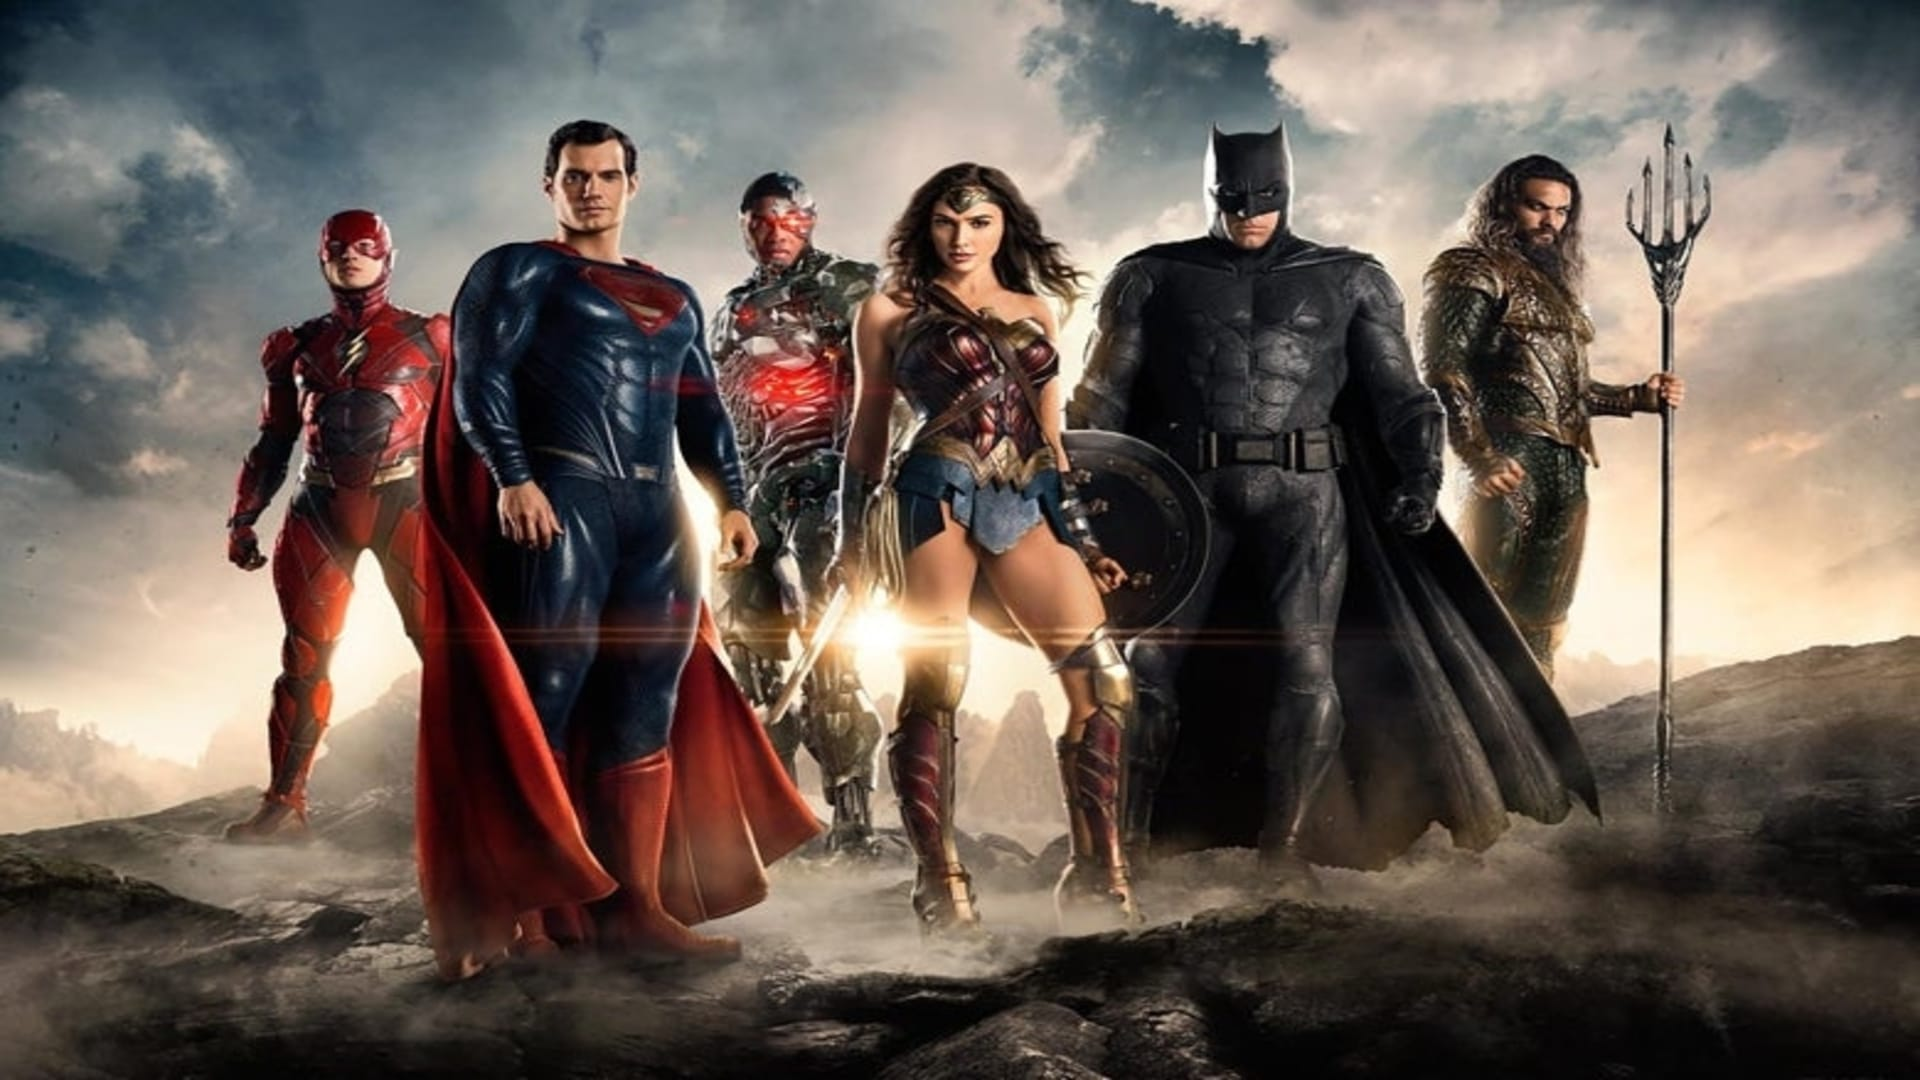 His most memorable work was seen in Justice League